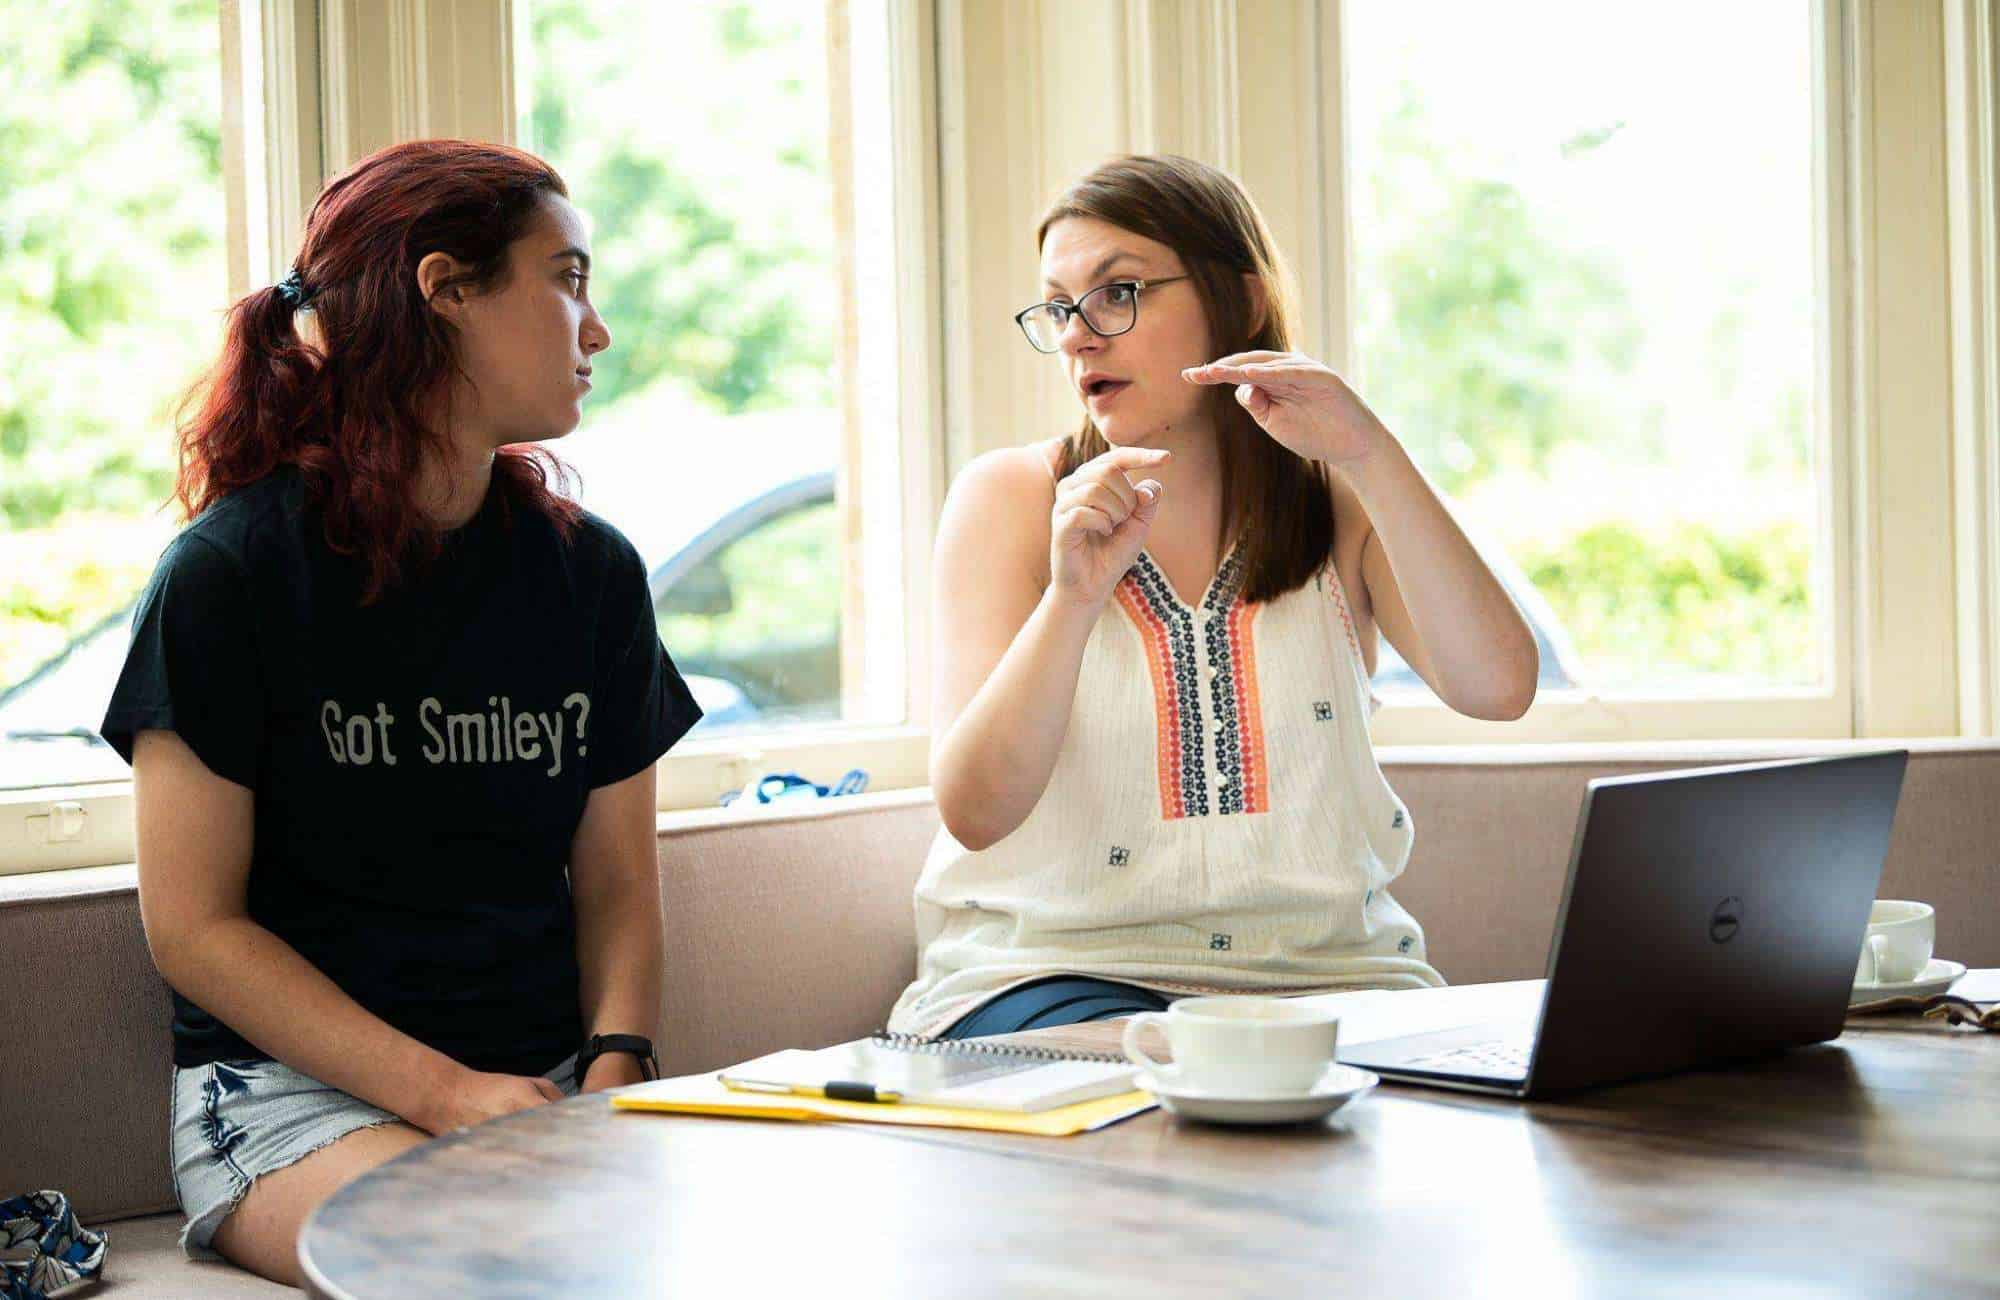 A tutor helps a student prepare for and Oxford or Cambridge Interview